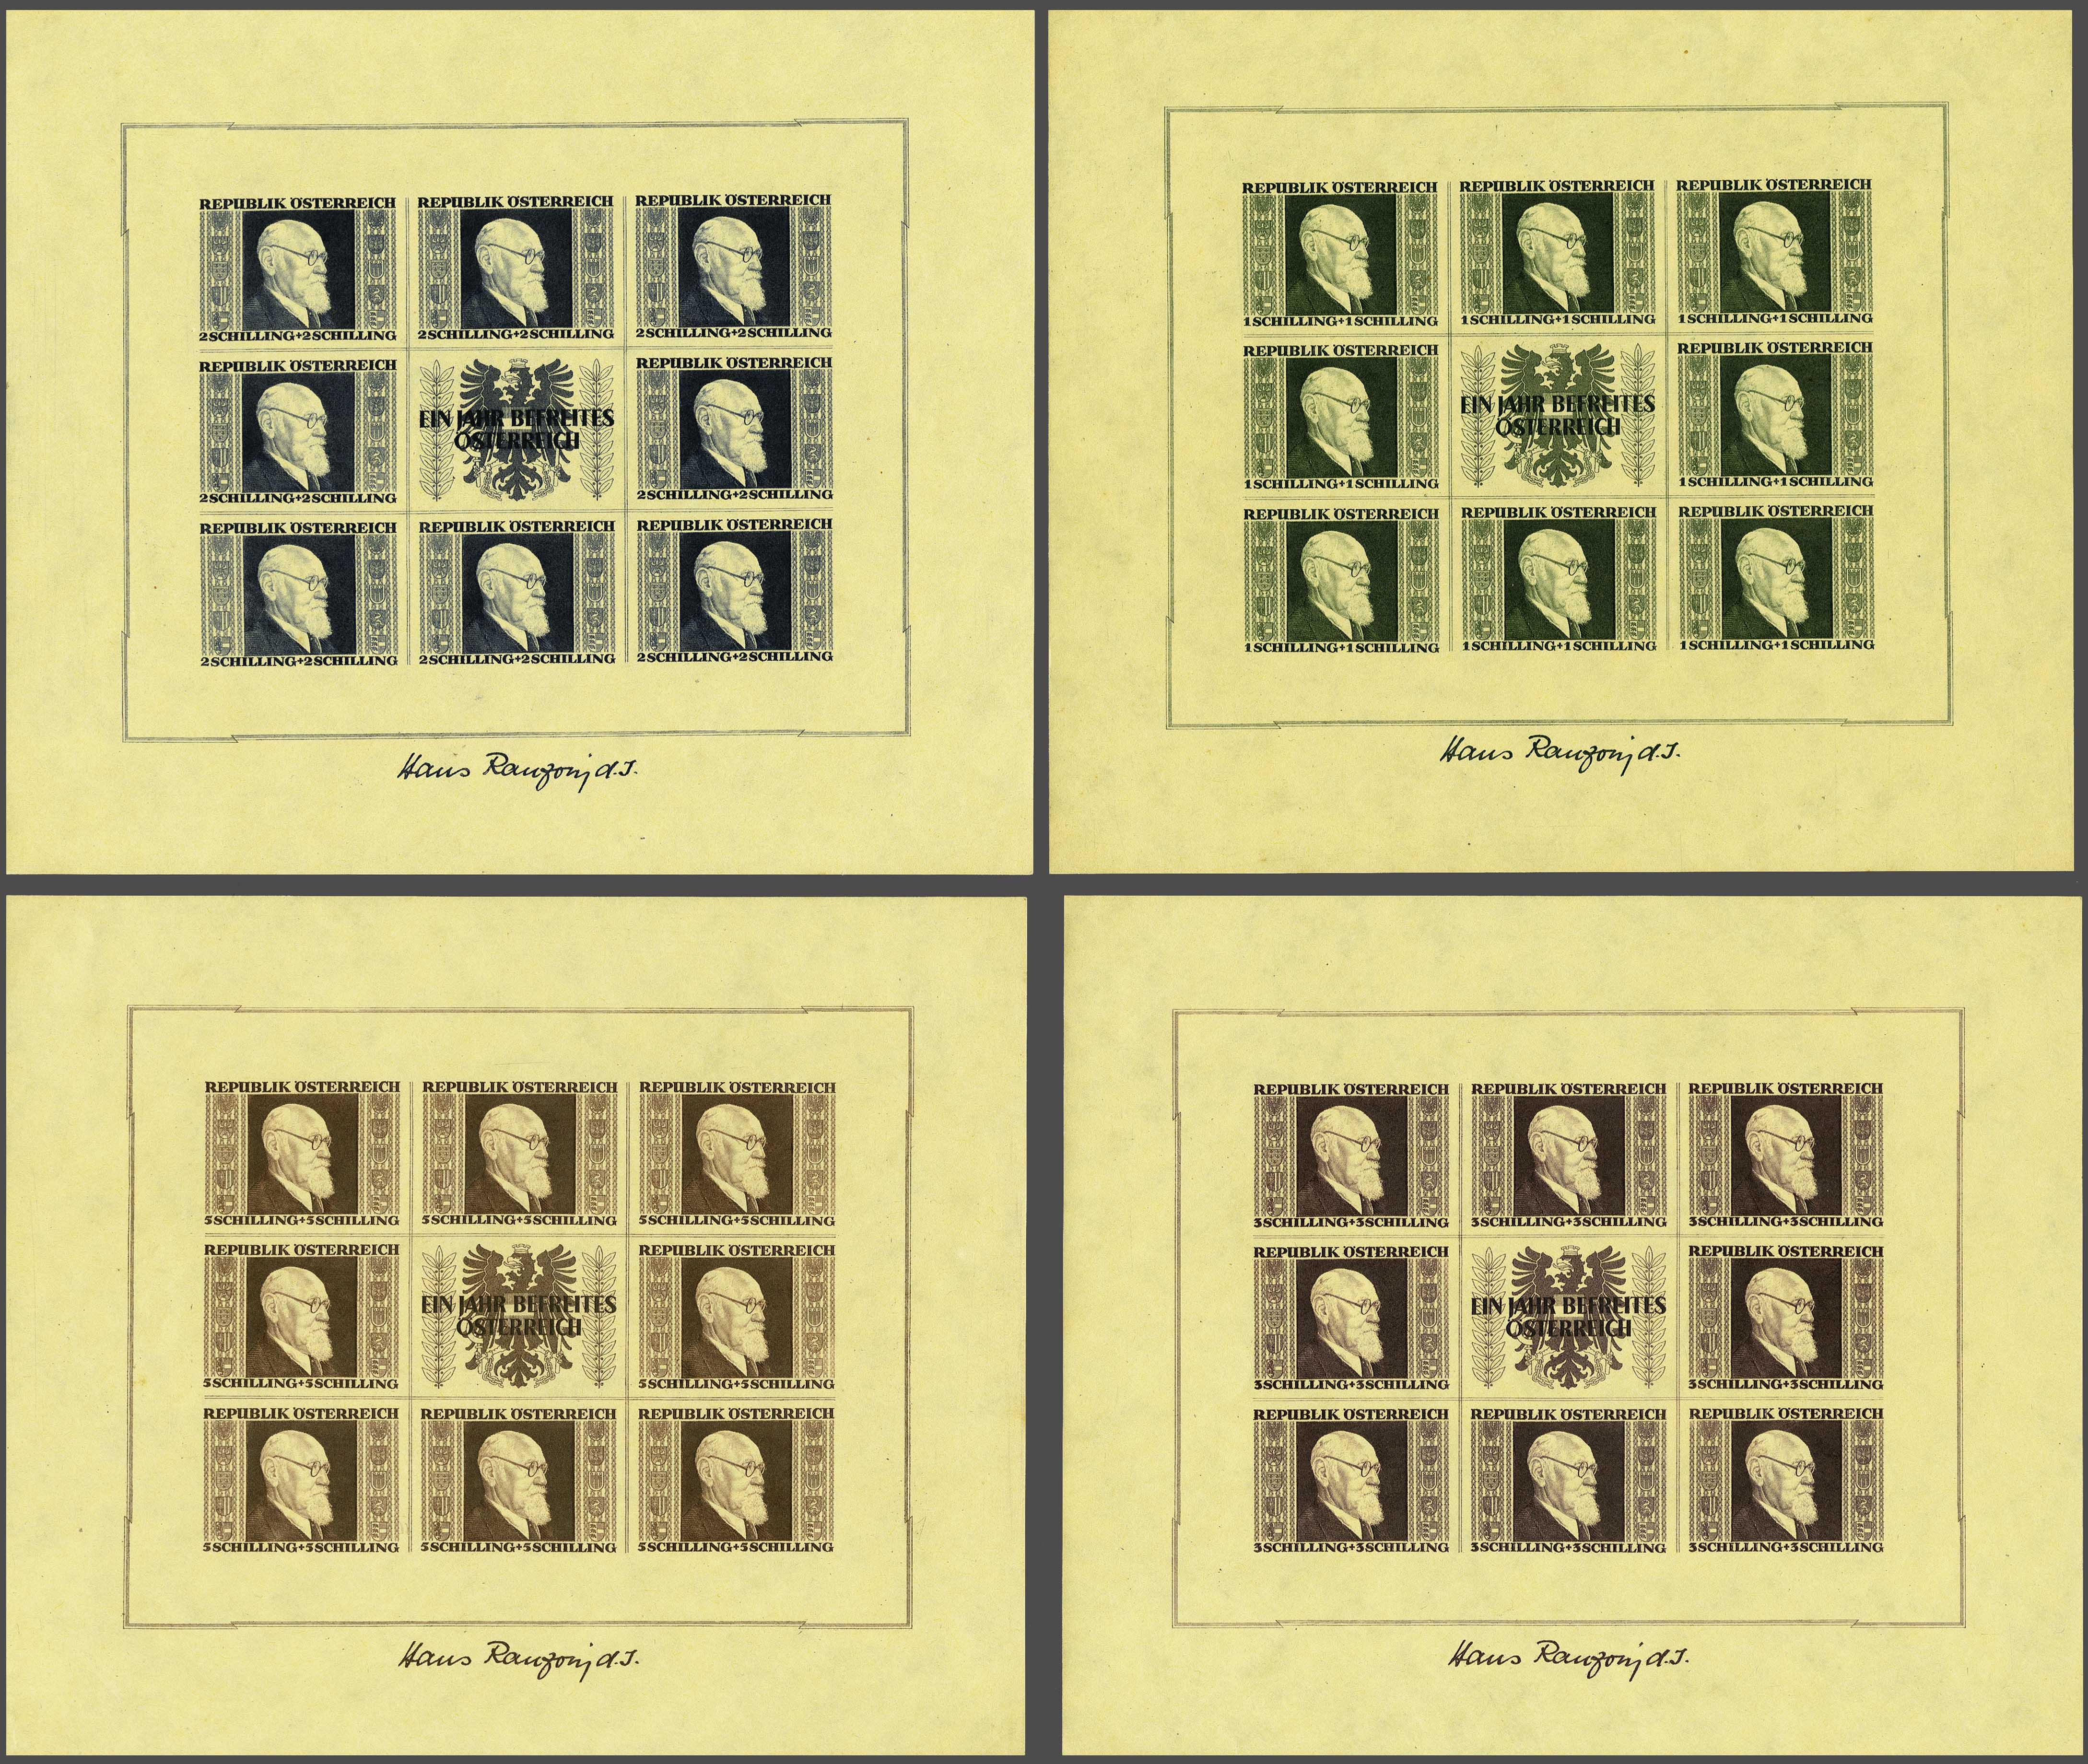 Lot 202 - Austria and former territories Austria -  Corinphila Veilingen Auction 245-246 Day 1 - Nepal - The Dick van der Wateren Collection, Foreign countries - Single lots, Picture postcards